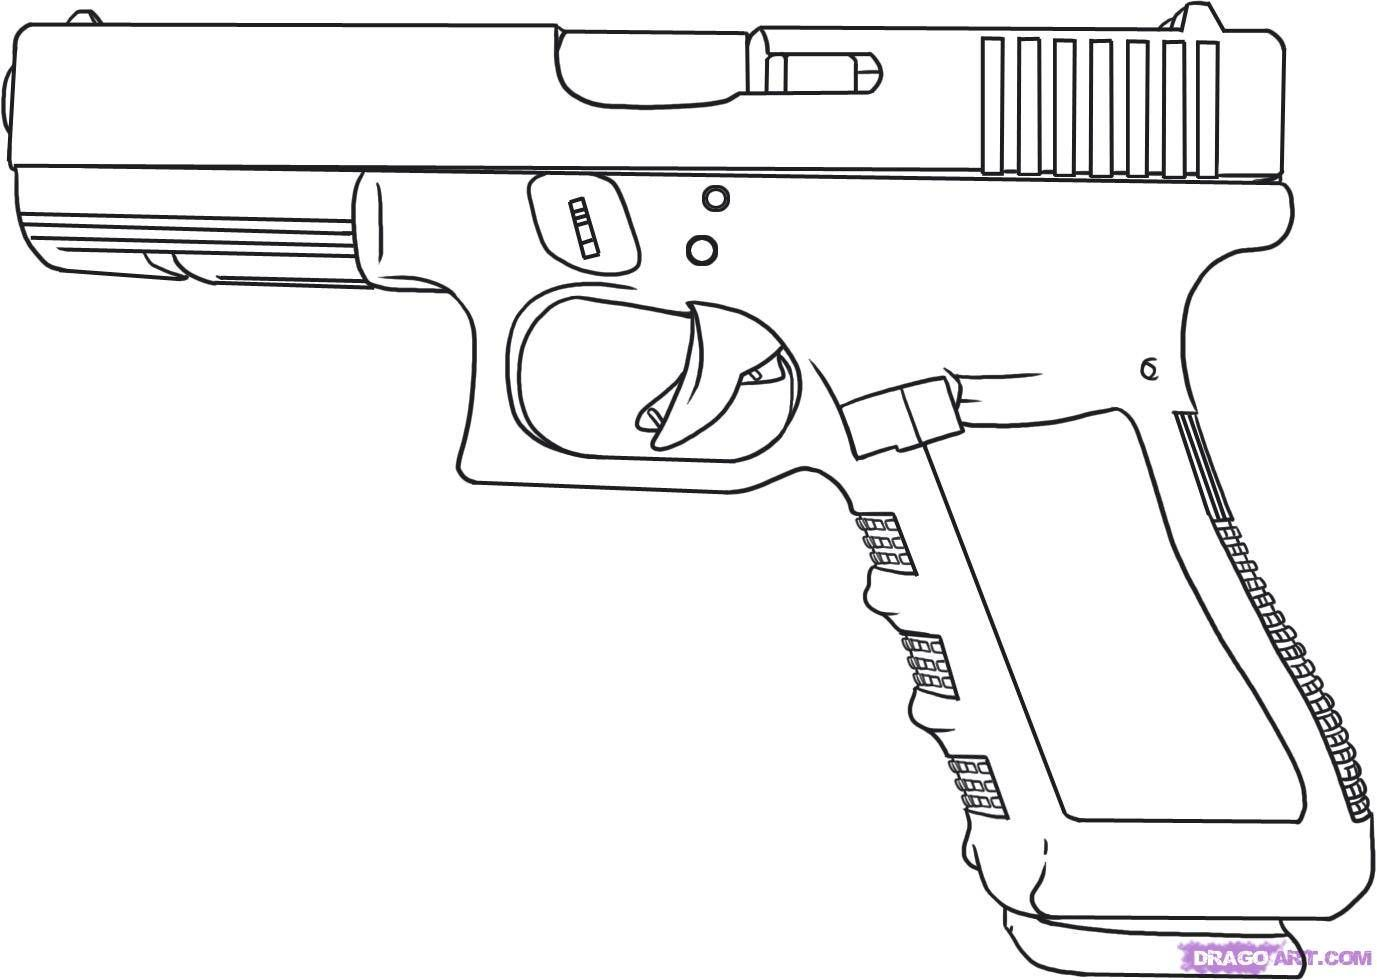 9mm Drawing Pictures To Pin